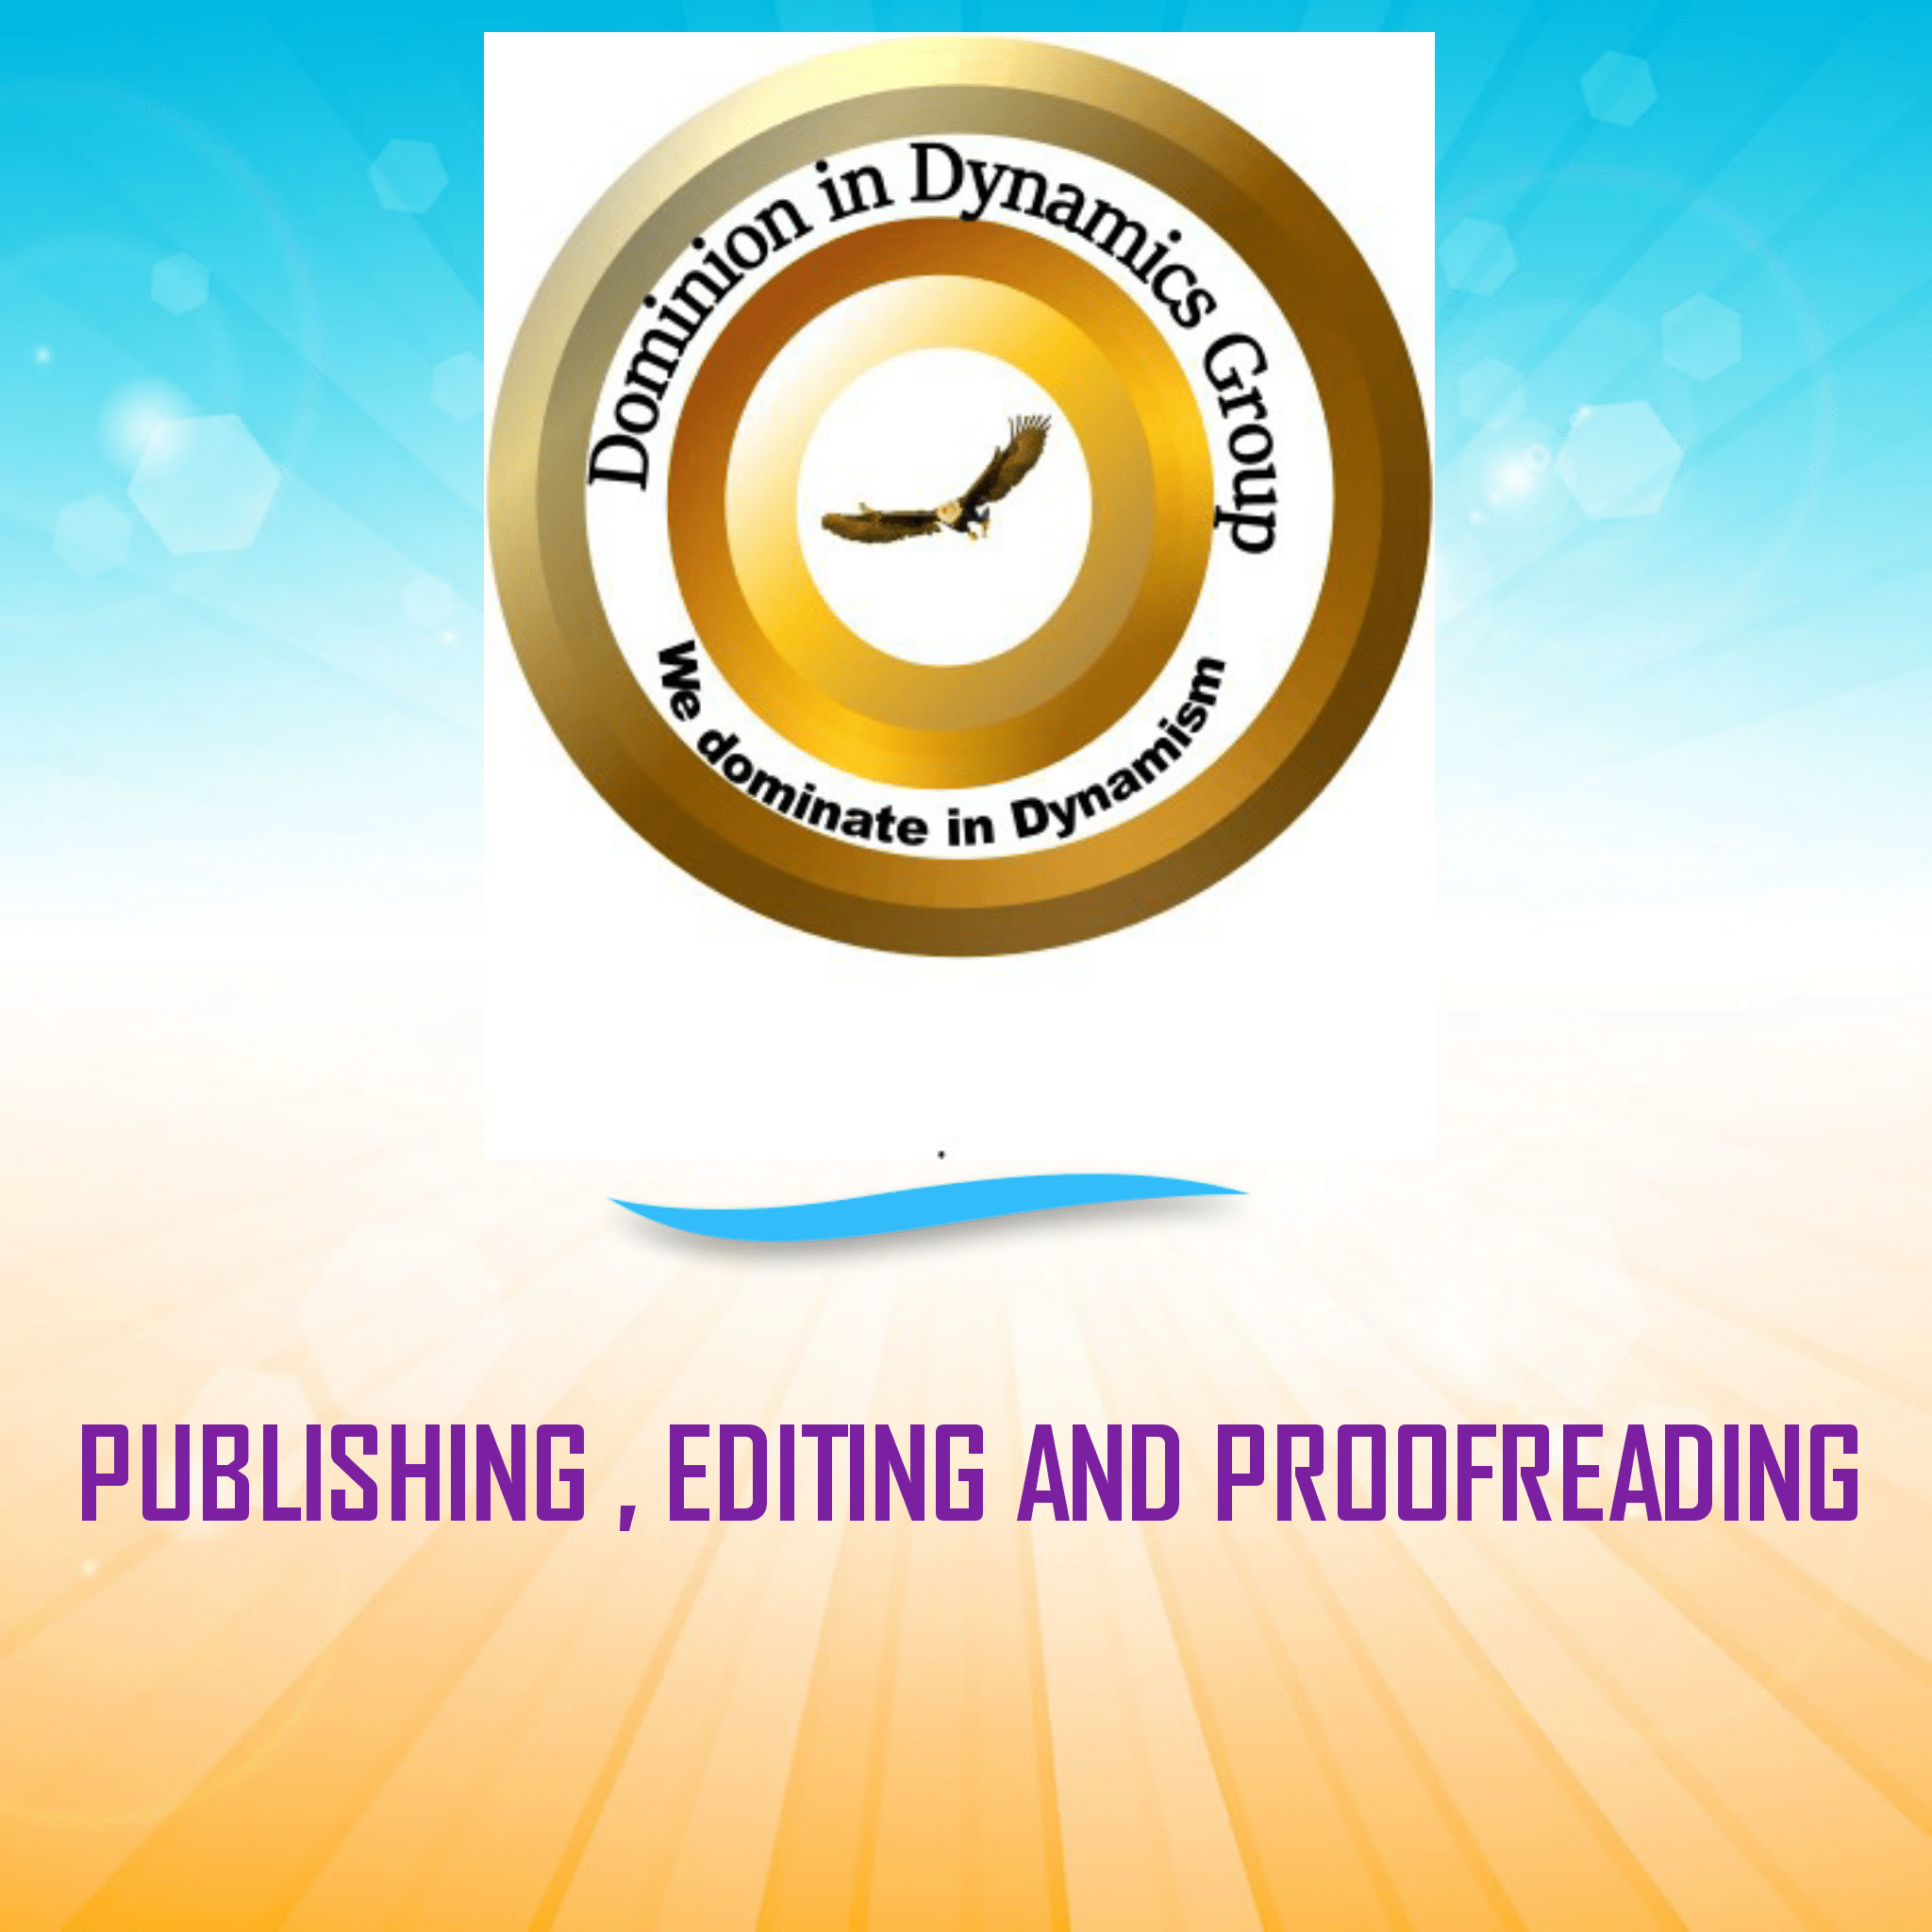 D in D publishing ,editing and proofreading